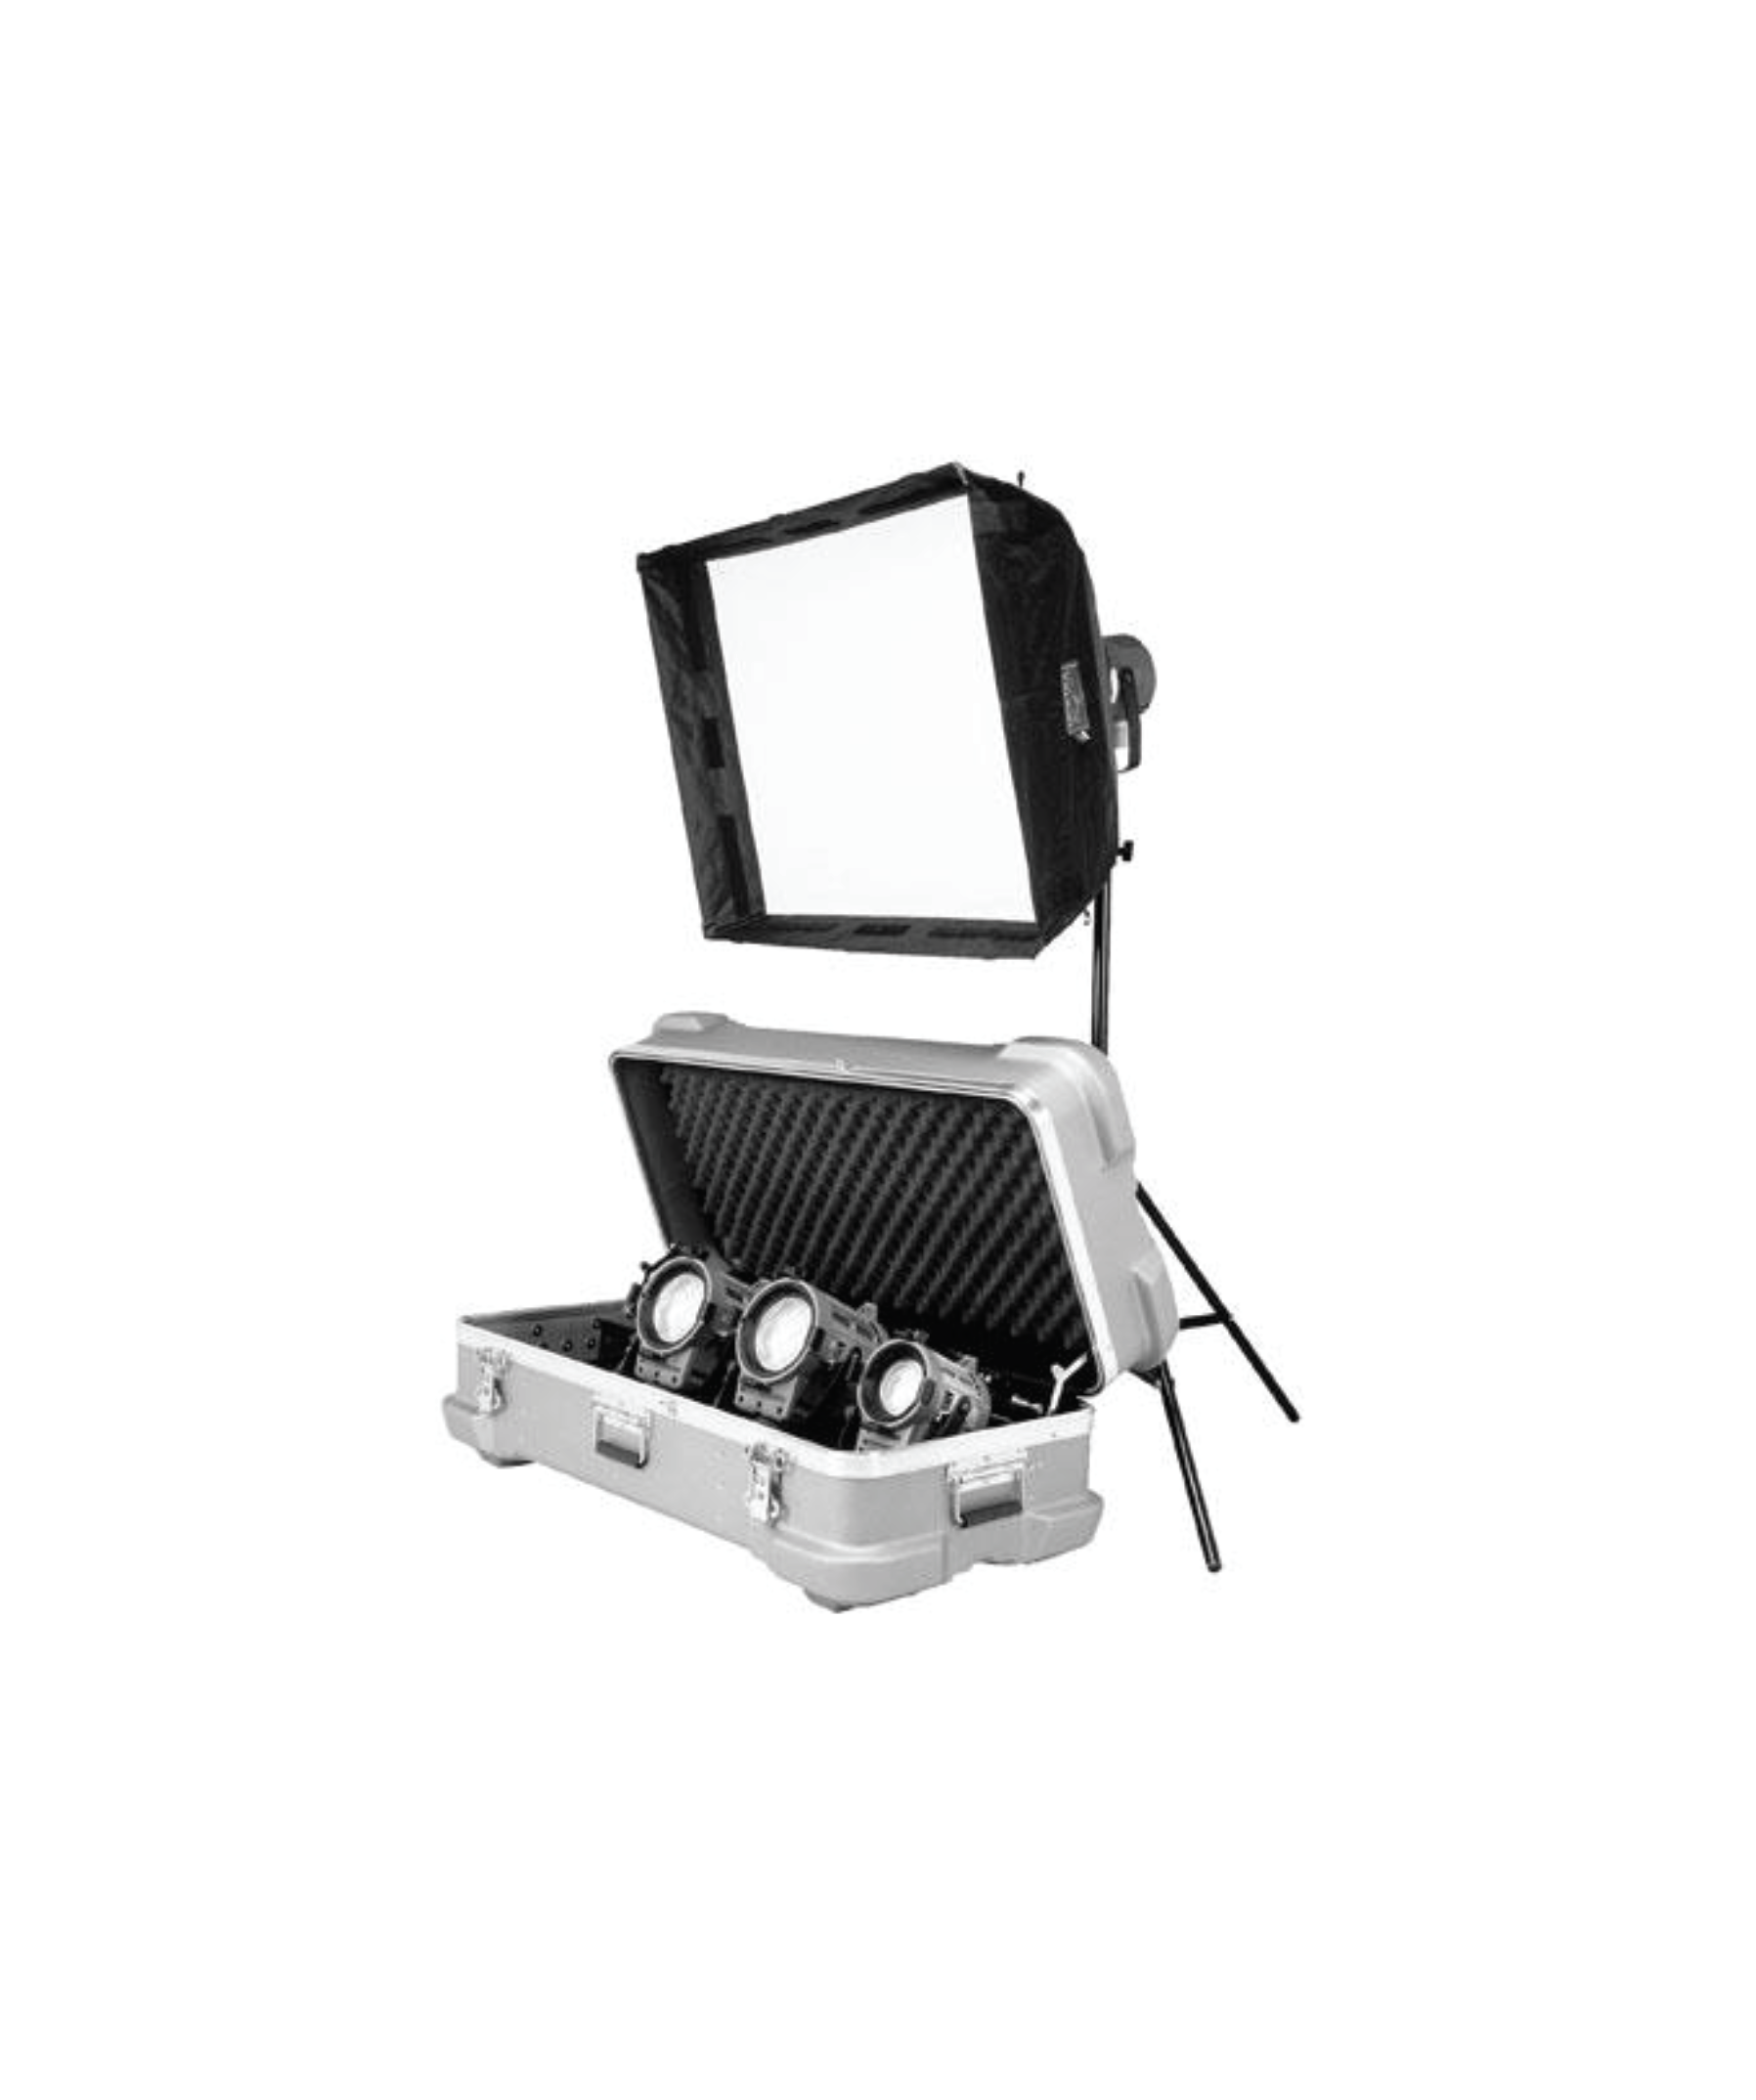 ARRI 1000W Light Kit